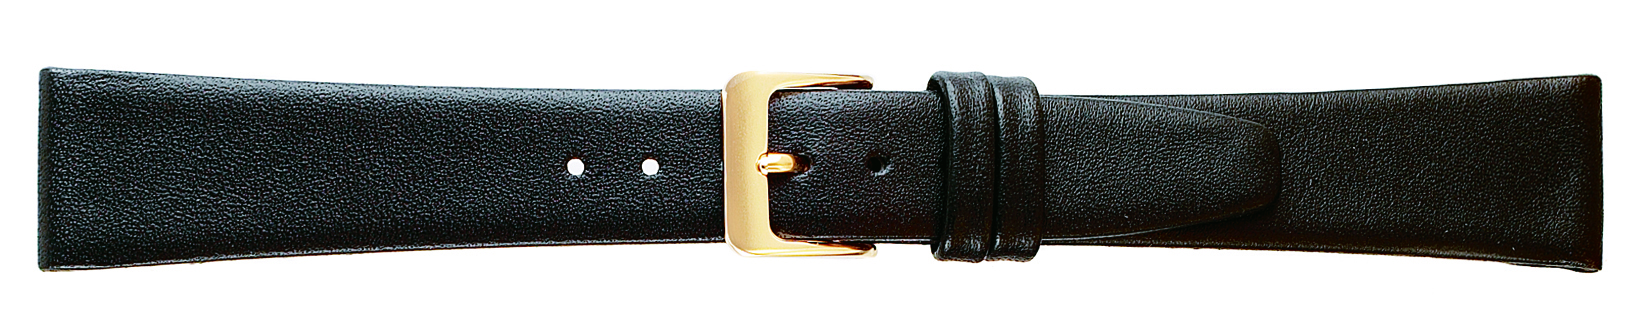 17MM Leather Band Black Smooth Calf-0